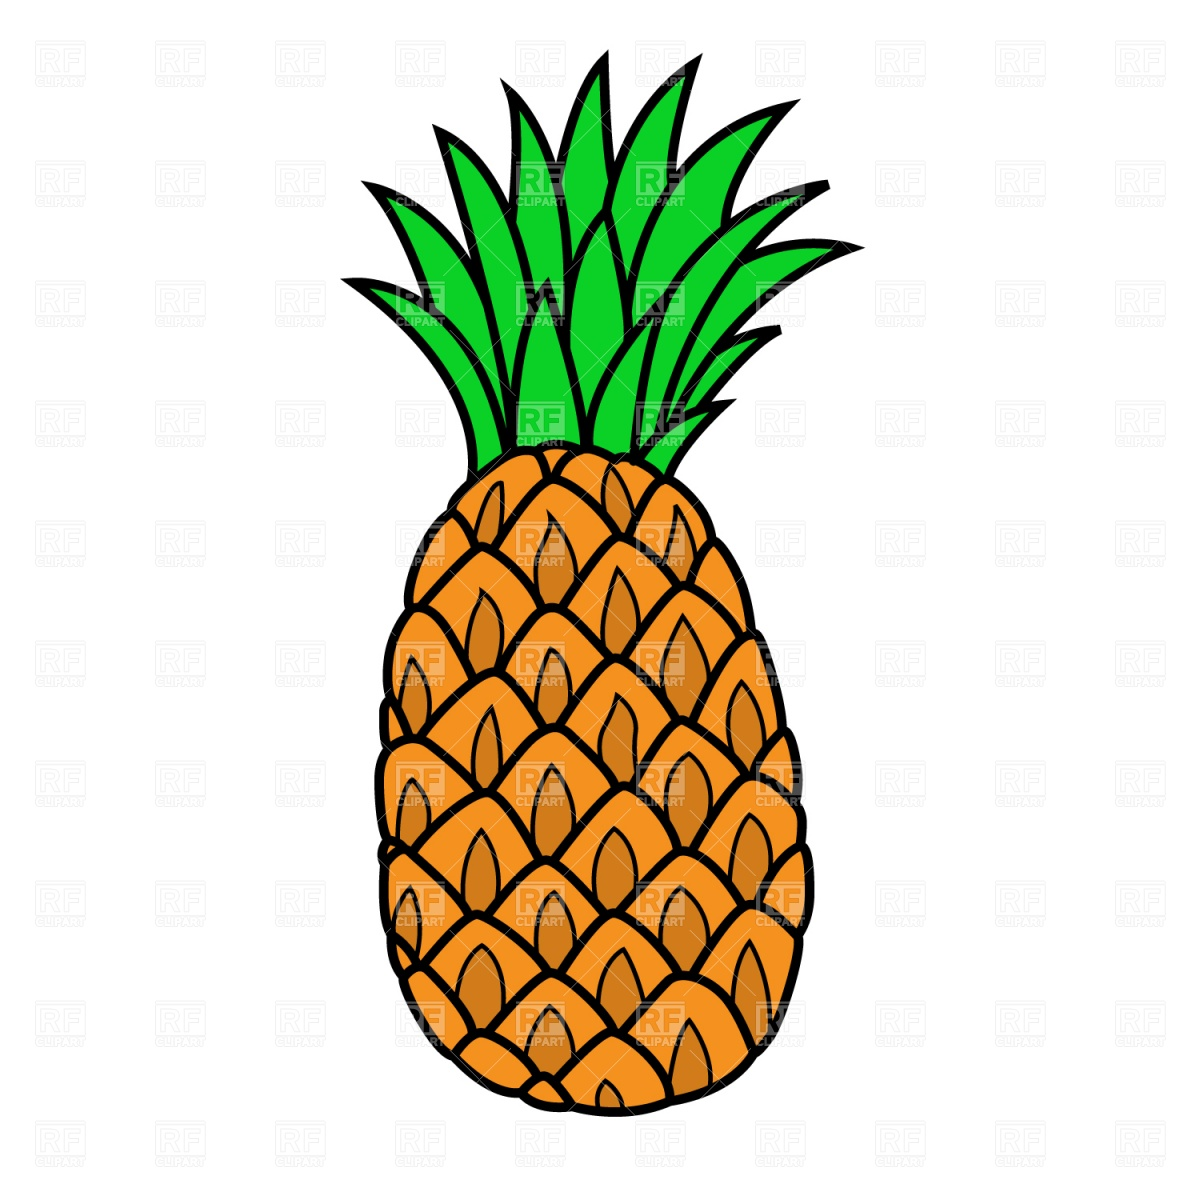 Free cliparts download clip. Clipart pineapple